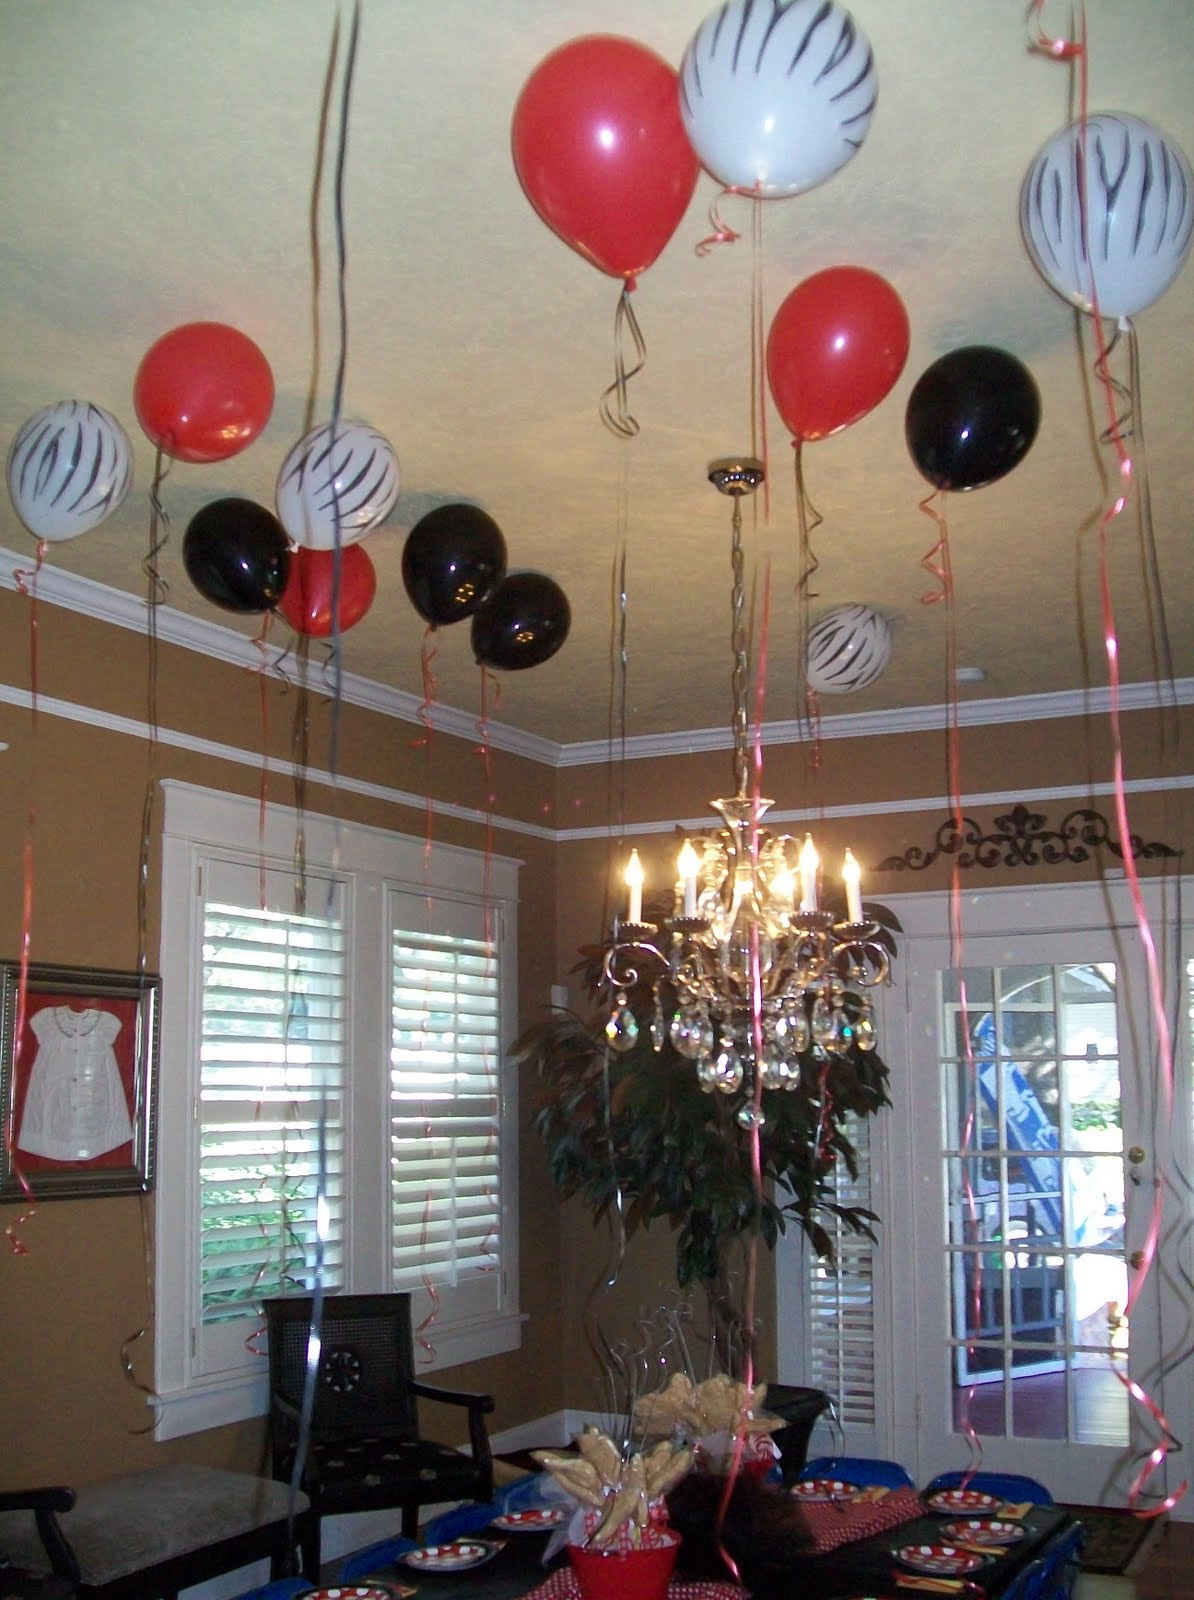 Decorating with balloons for a wedding living room for Room decor ideas with balloons